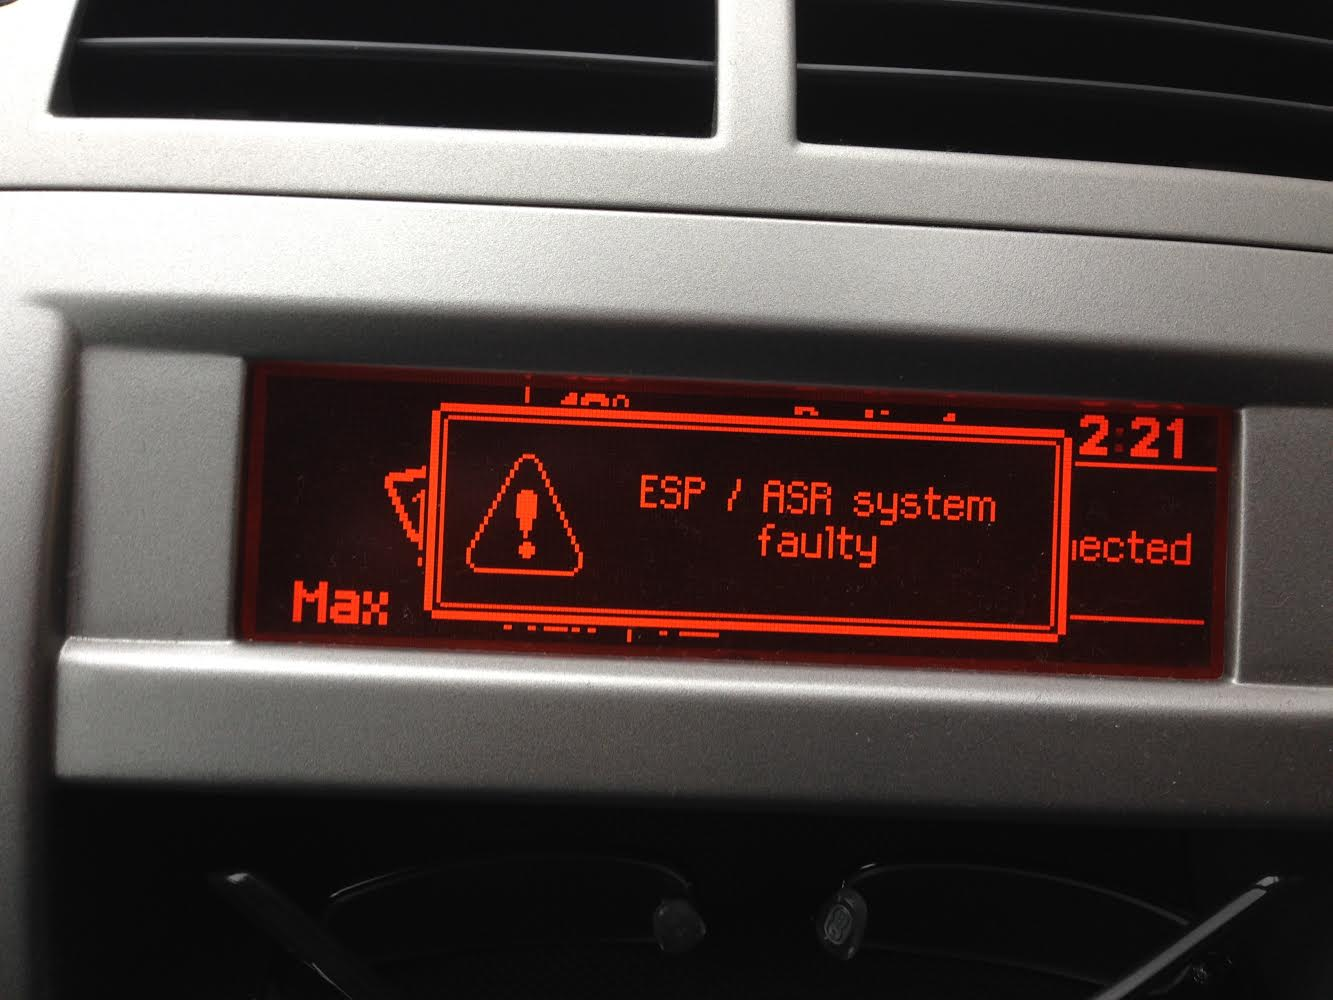 22562d1415545274 407sw esp asr fault esp 407sw esp asr fault peugeot forums  at panicattacktreatment.co